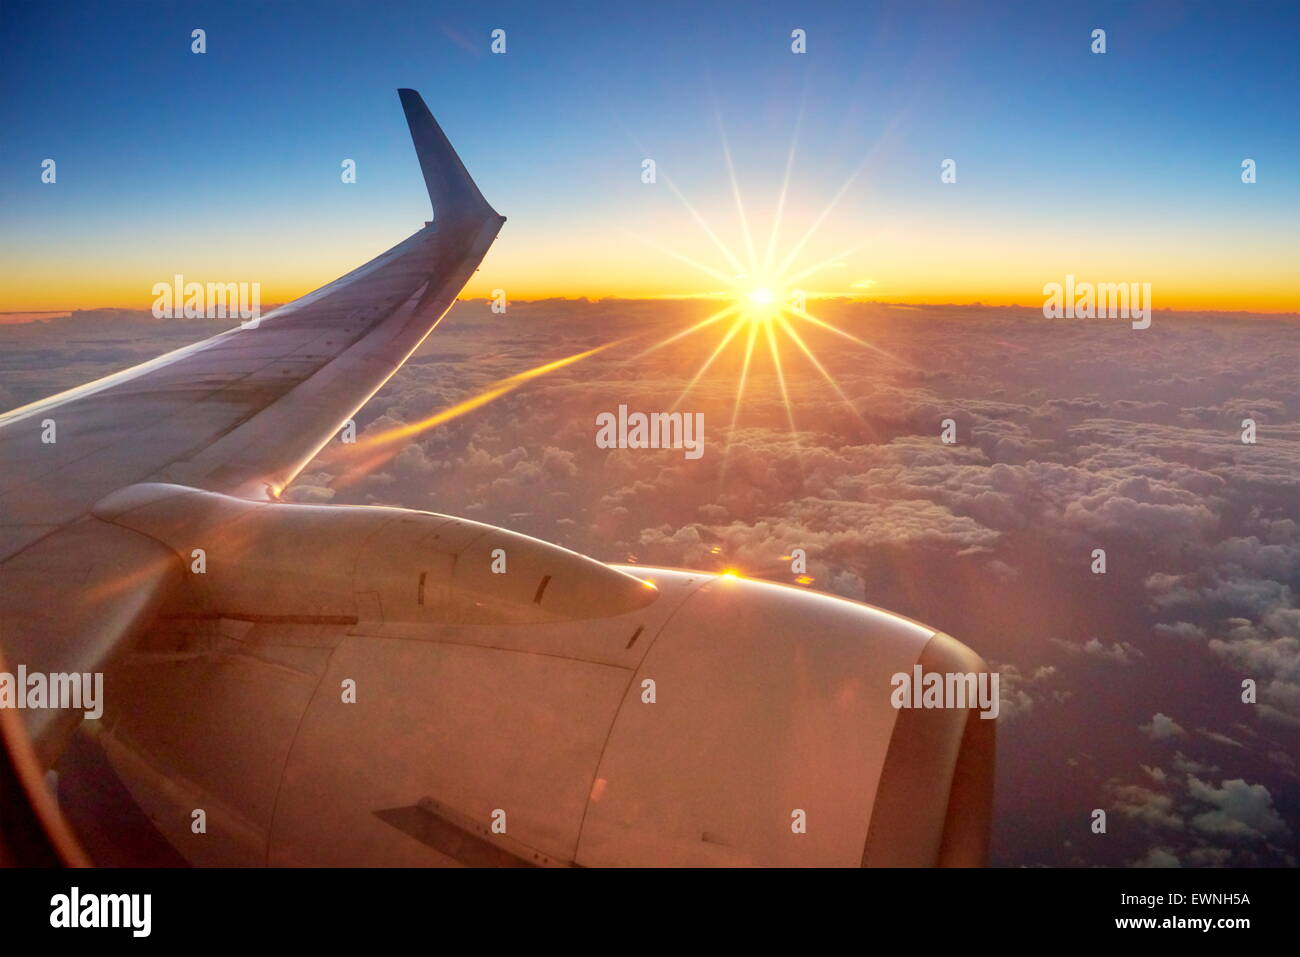 Sunrise view from airplane window - Stock Image